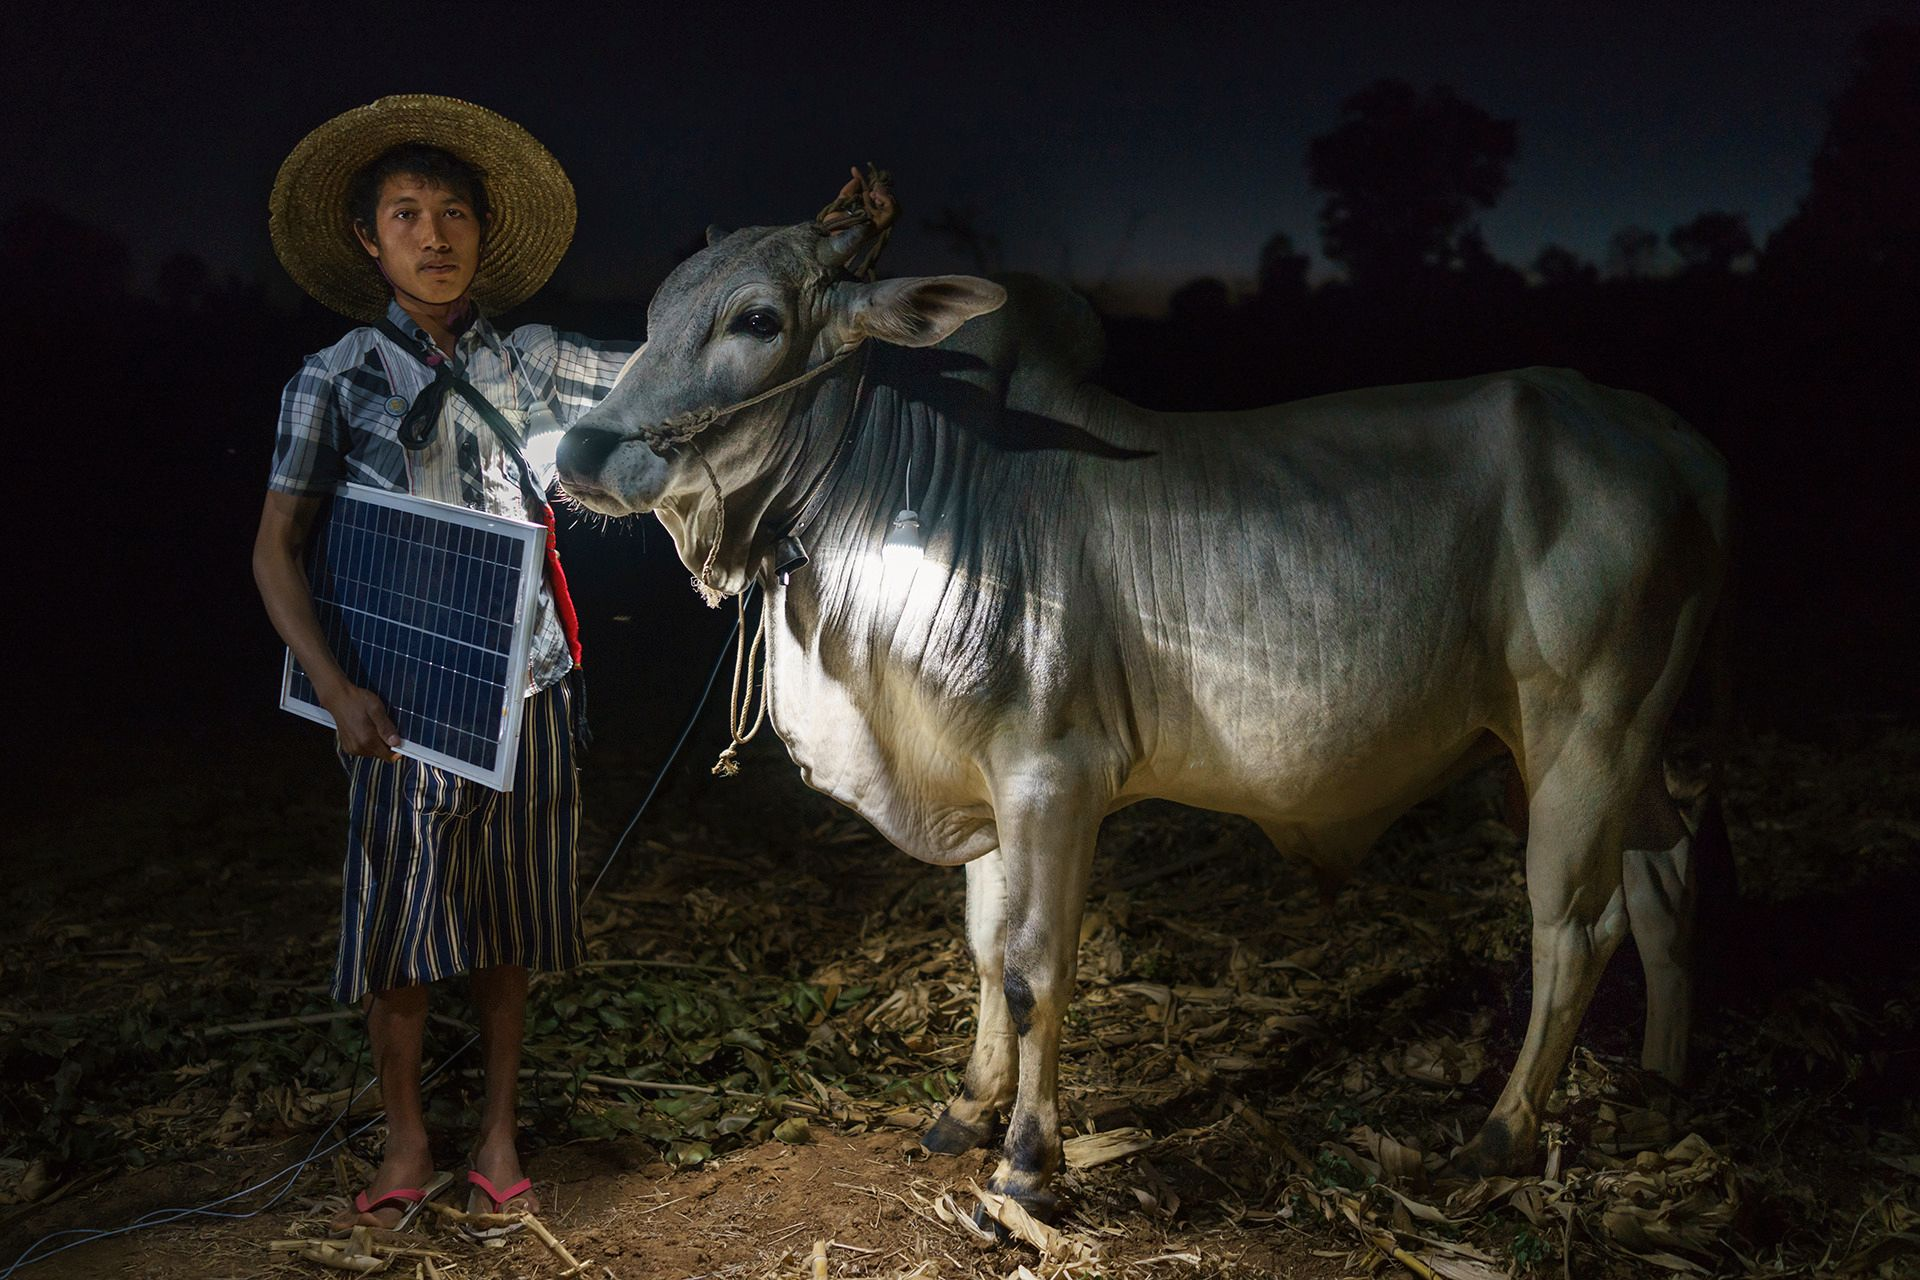 Mg Ko, 20 years old. A Shan farmer with his cow in Lui Pan Sone Village. Kayah State. Myanma. Foto: Ruben Salgado Escudero, Spain, SHORTLIST, Portraiture, Professional Competition, 2015 Sony World Photography Awards